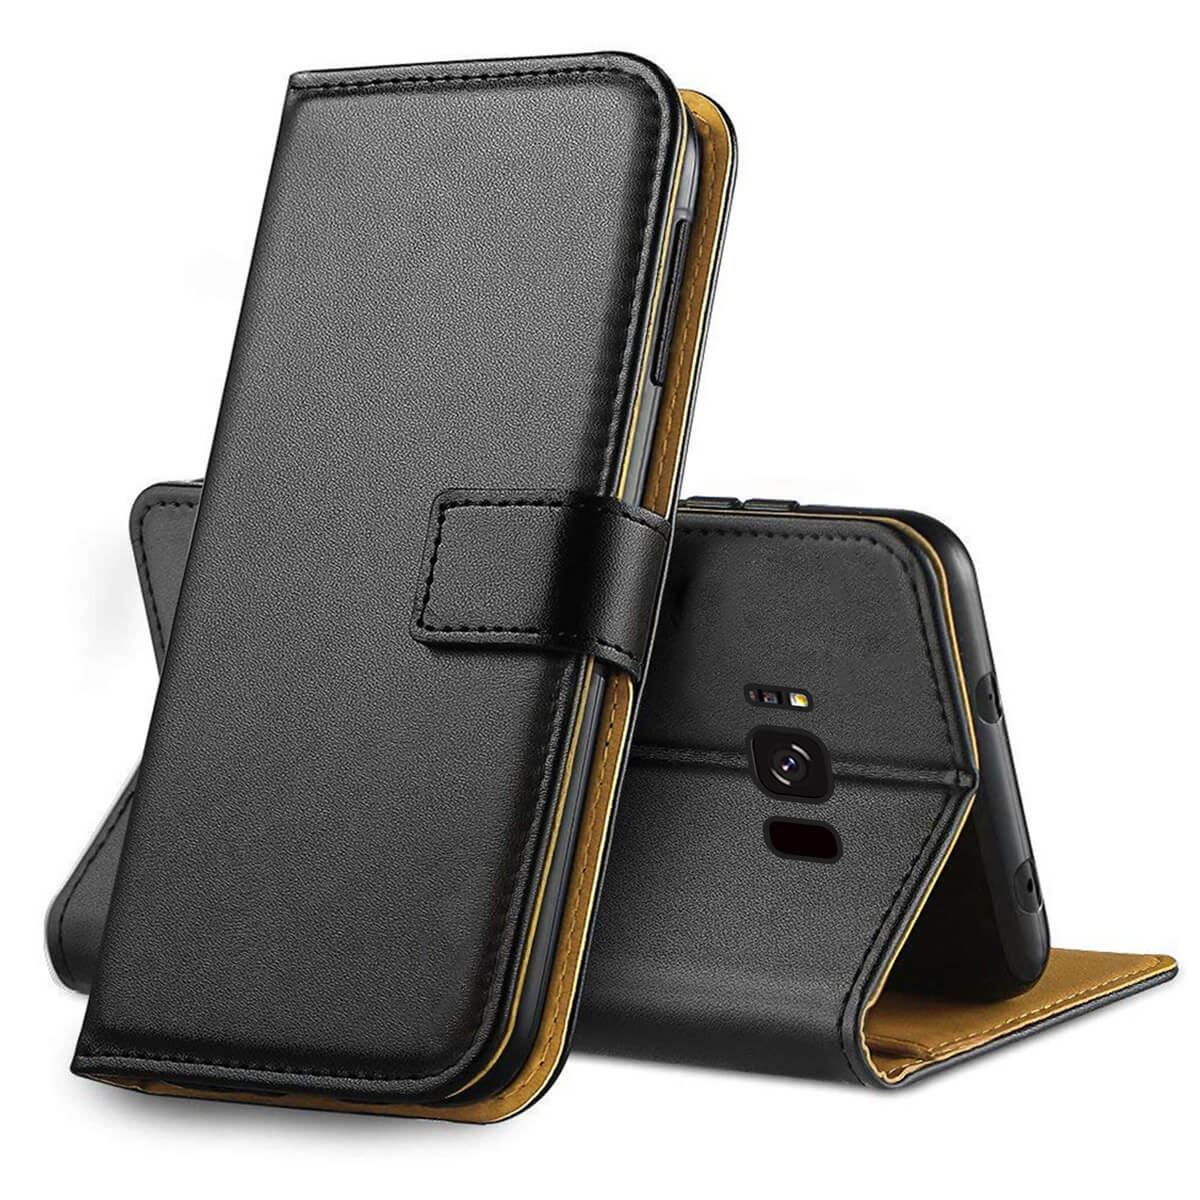 Magnetic-Flip-Wallet-Case-For-Samsung-Galaxy-S10-Plus-S9-S8-A50-Leather-Cover thumbnail 6